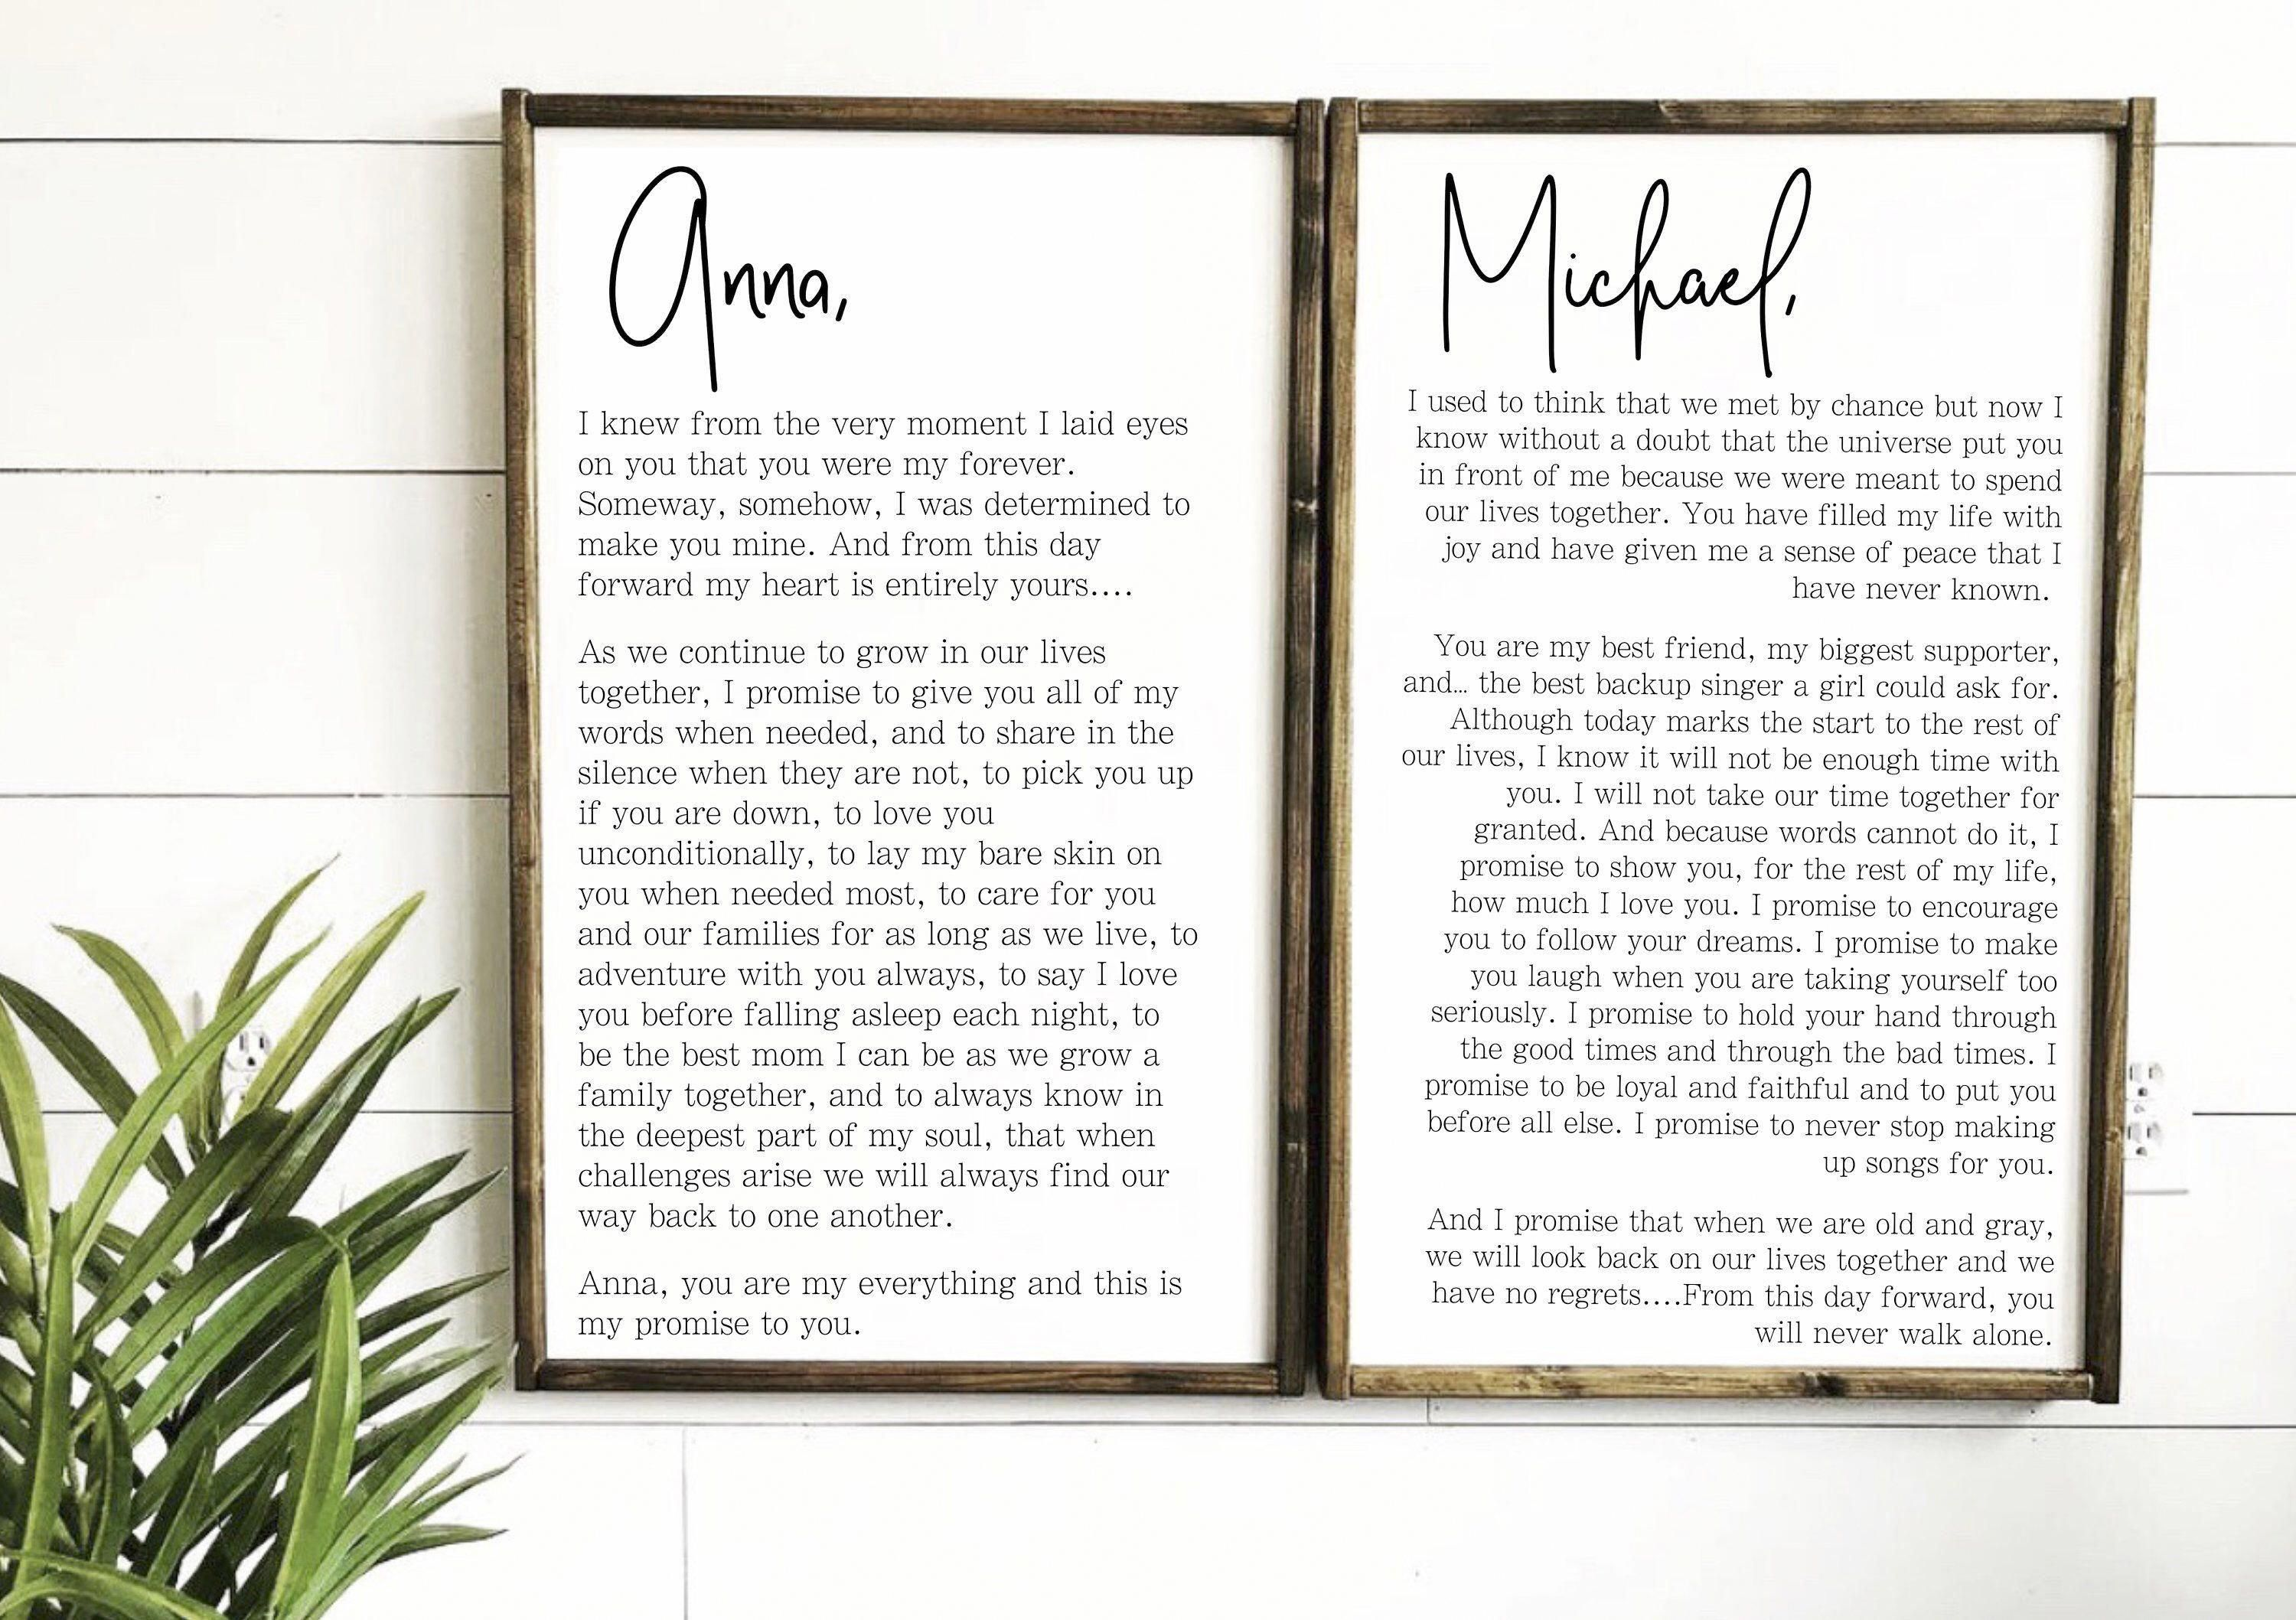 Wedding Vows Sign His And Her Customized Vows Wedding Vow Etsy In 2020 Wall Art Master Master Bedrooms Decor Wall Decor Bedroom